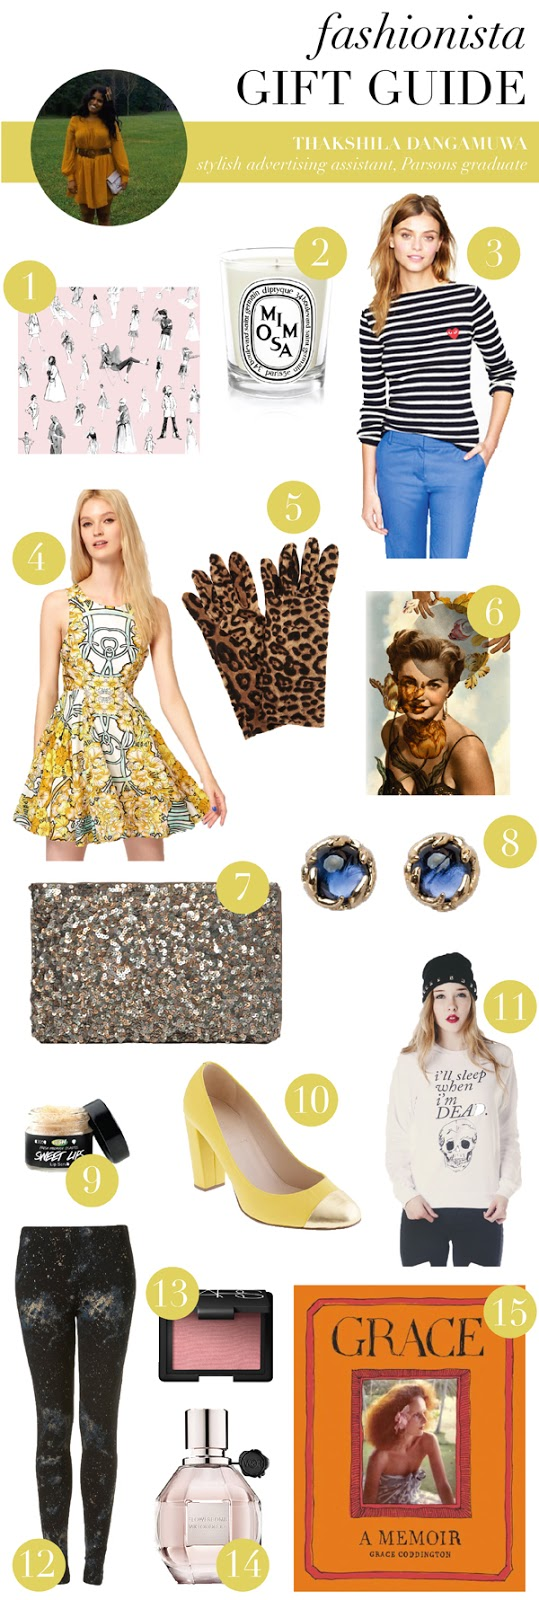 gift guide for the fashionista (via Holly Would)